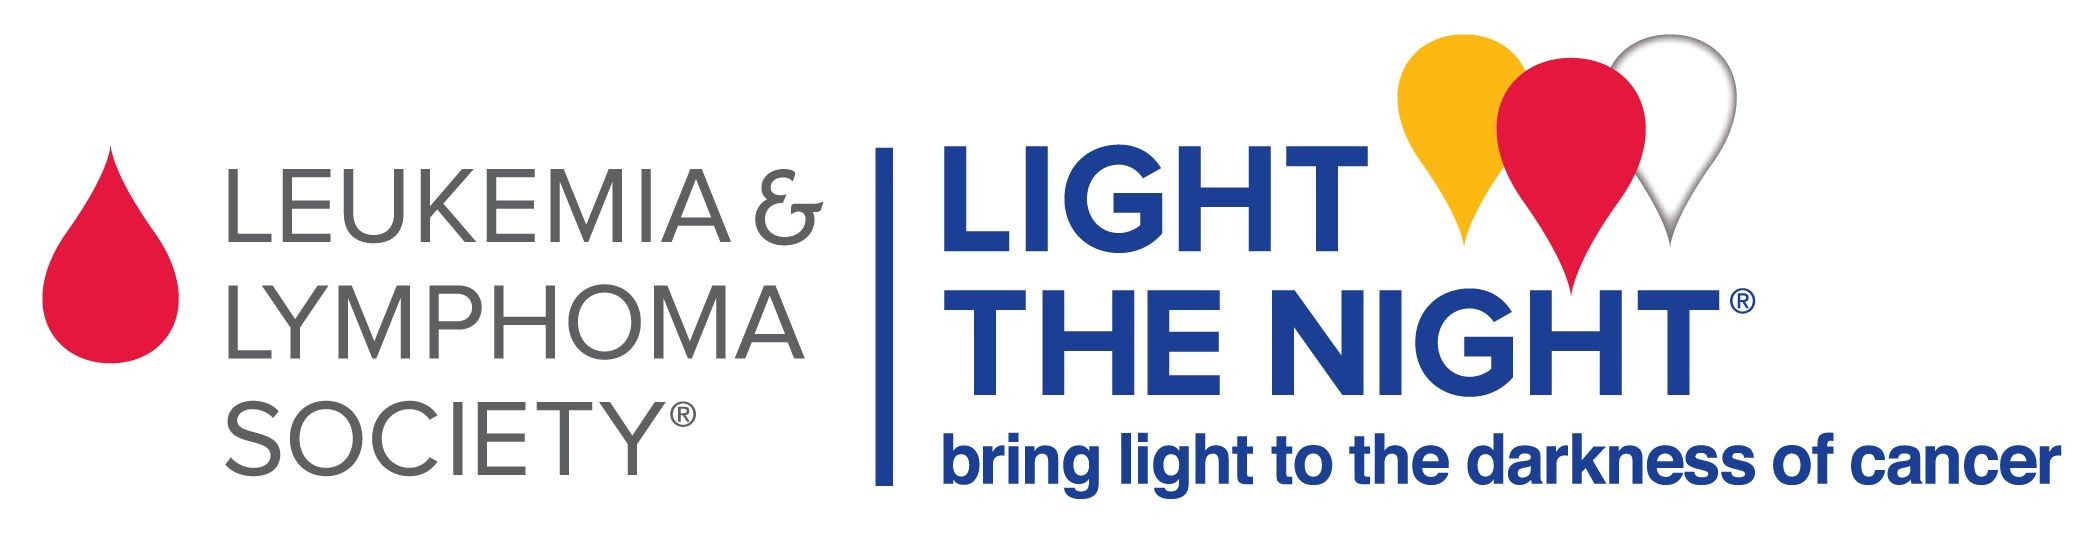 Leukaemia & Lymphoma Society light the night charity event